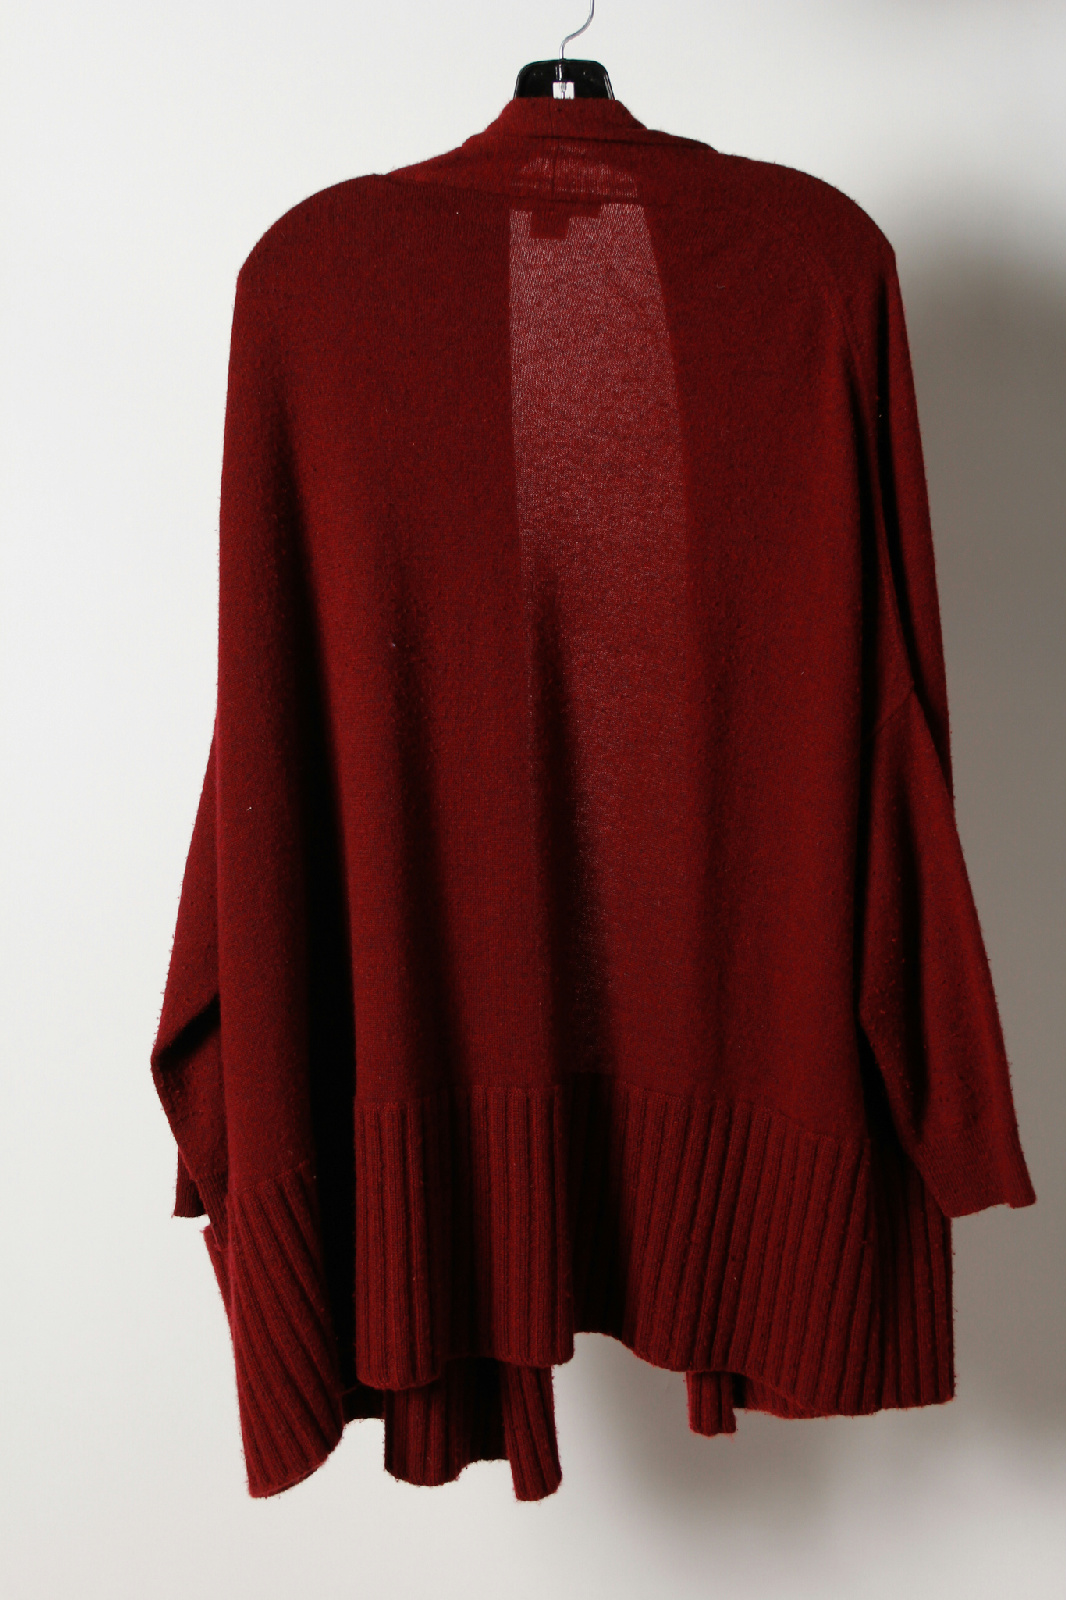 Michael Kors Red Cashmere Open Front Long Sleeve Cardigan ...